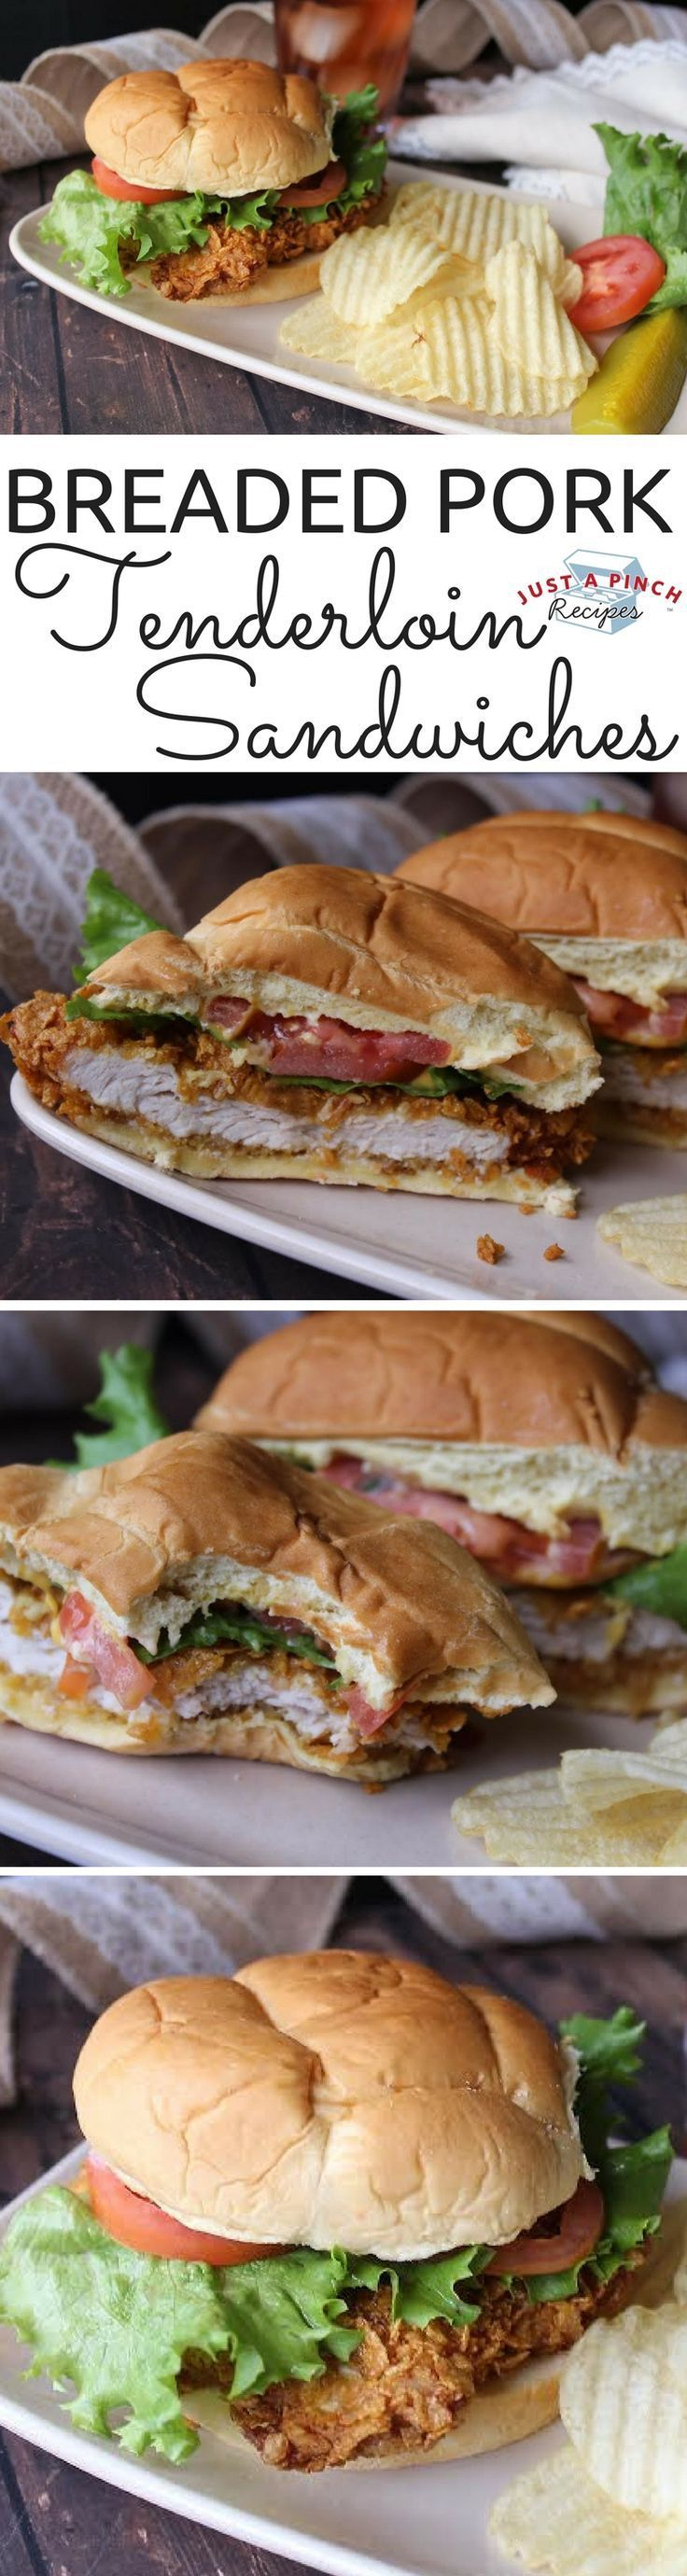 """Breaded Pork Tenderloin Sandwiches 